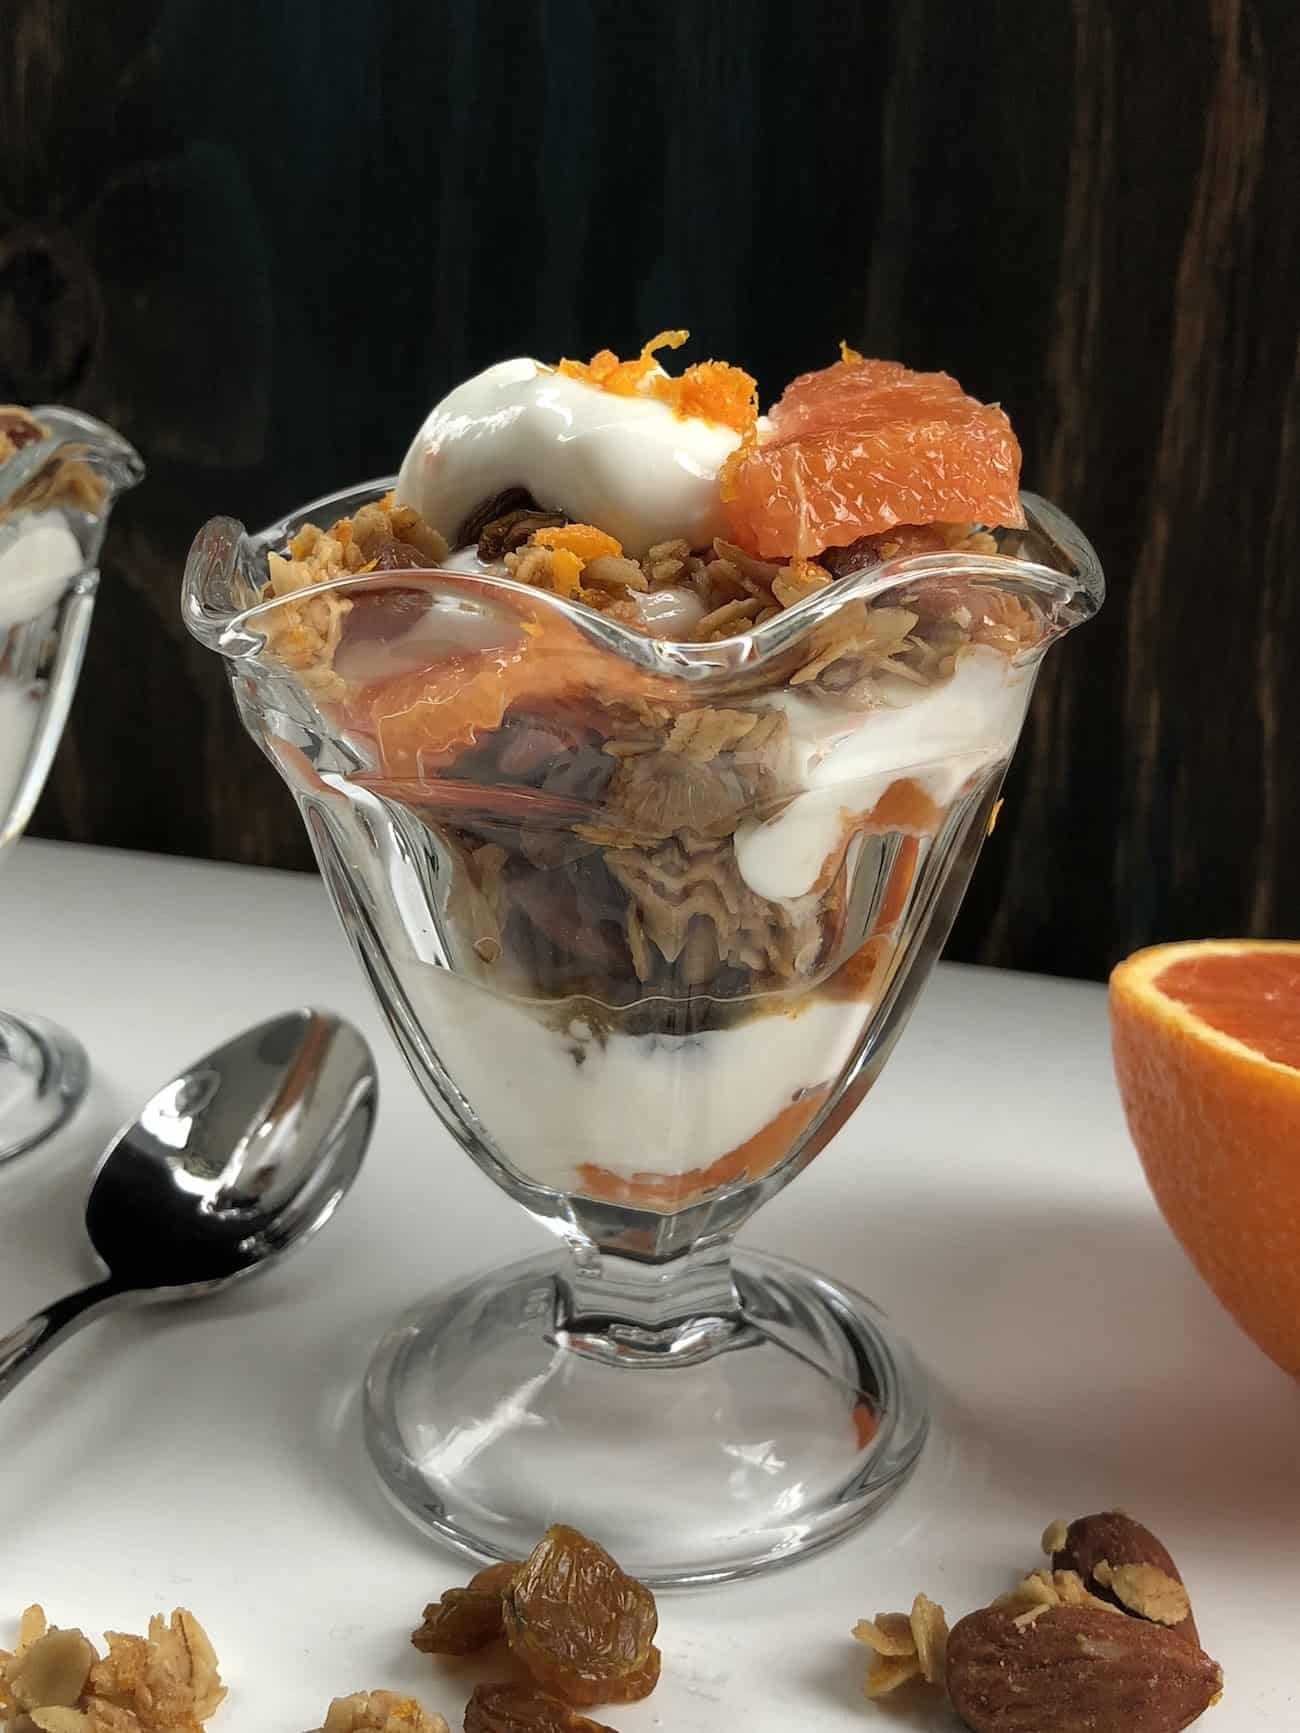 Orange and Yogurt Parfaits From the Side